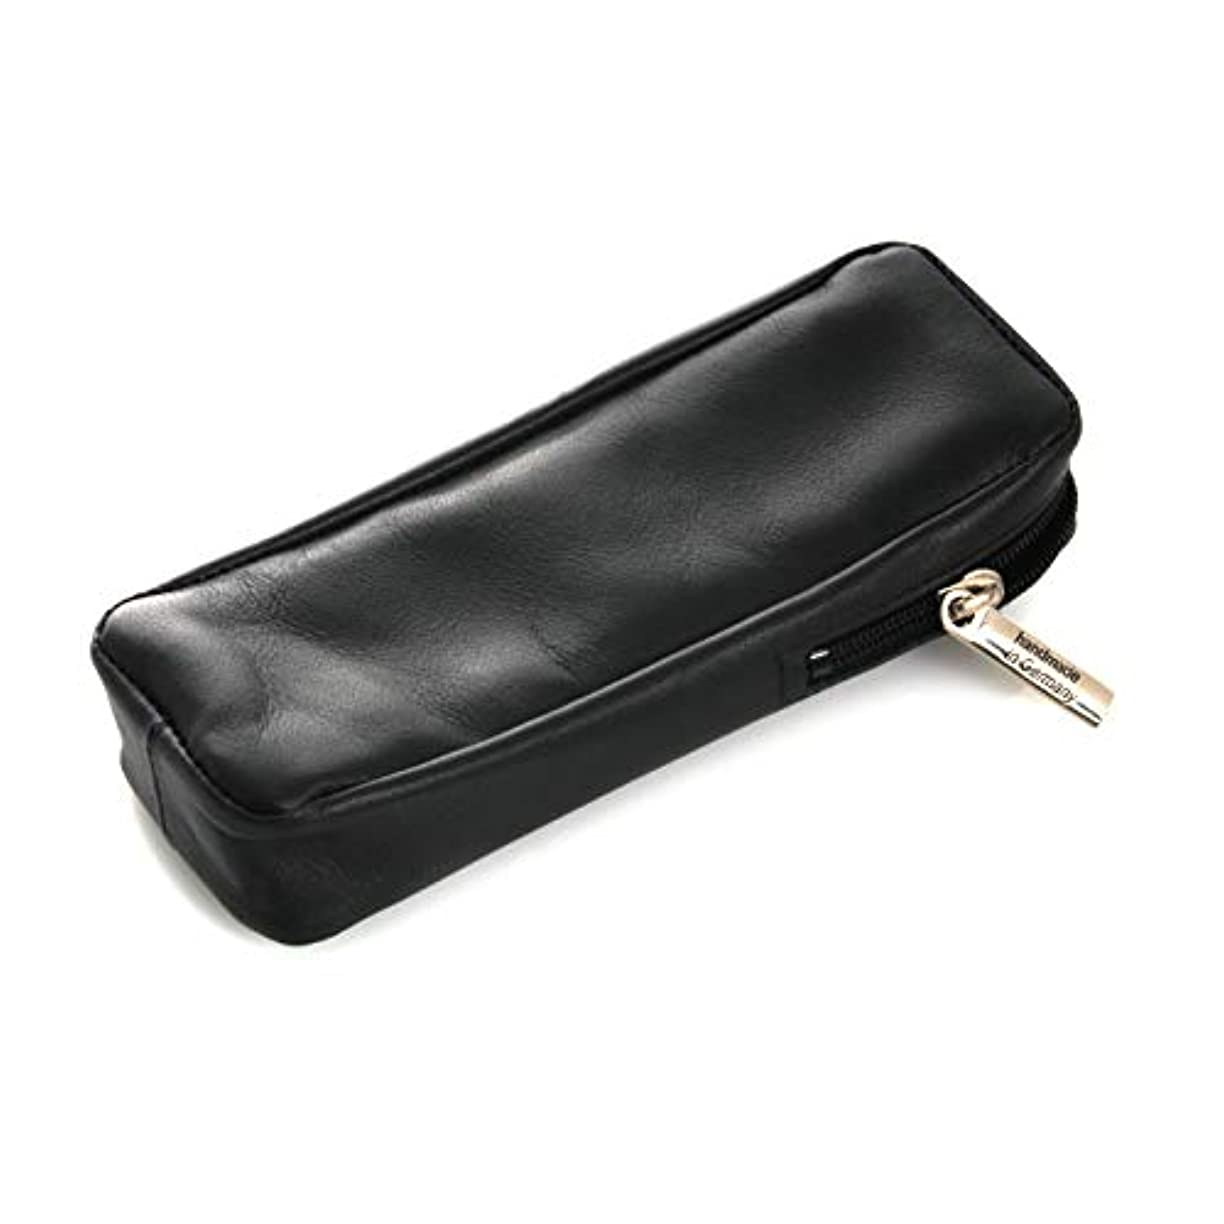 分布戦士強大なRazor Case 13 cm, Leather, Black, Dovo Solingen